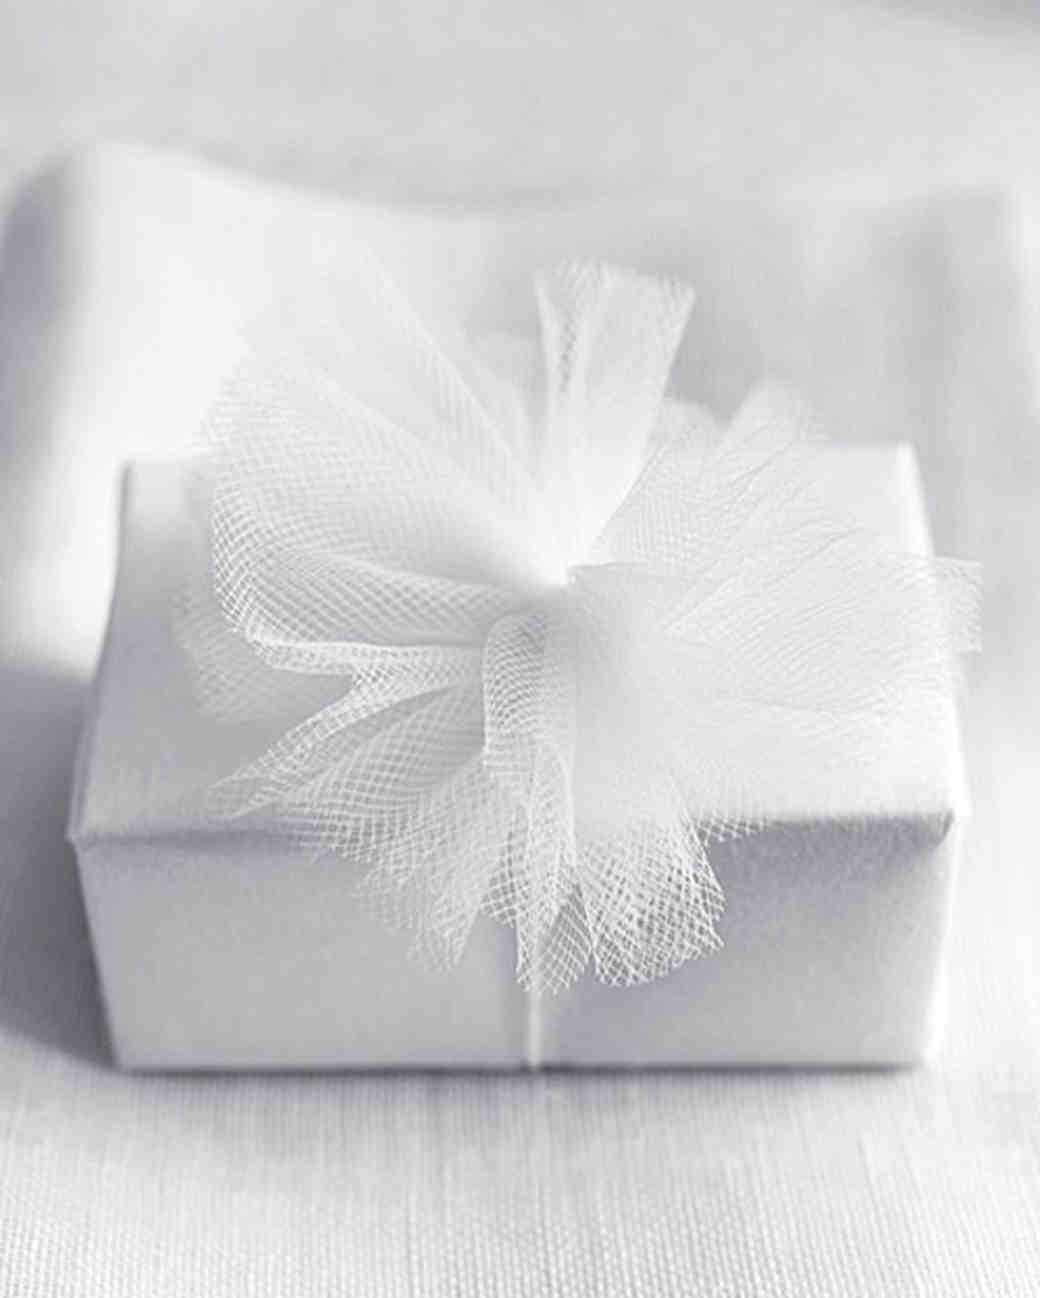 14 thoughtful wedding gift ideas under 250 - Wedding Gift Ideas